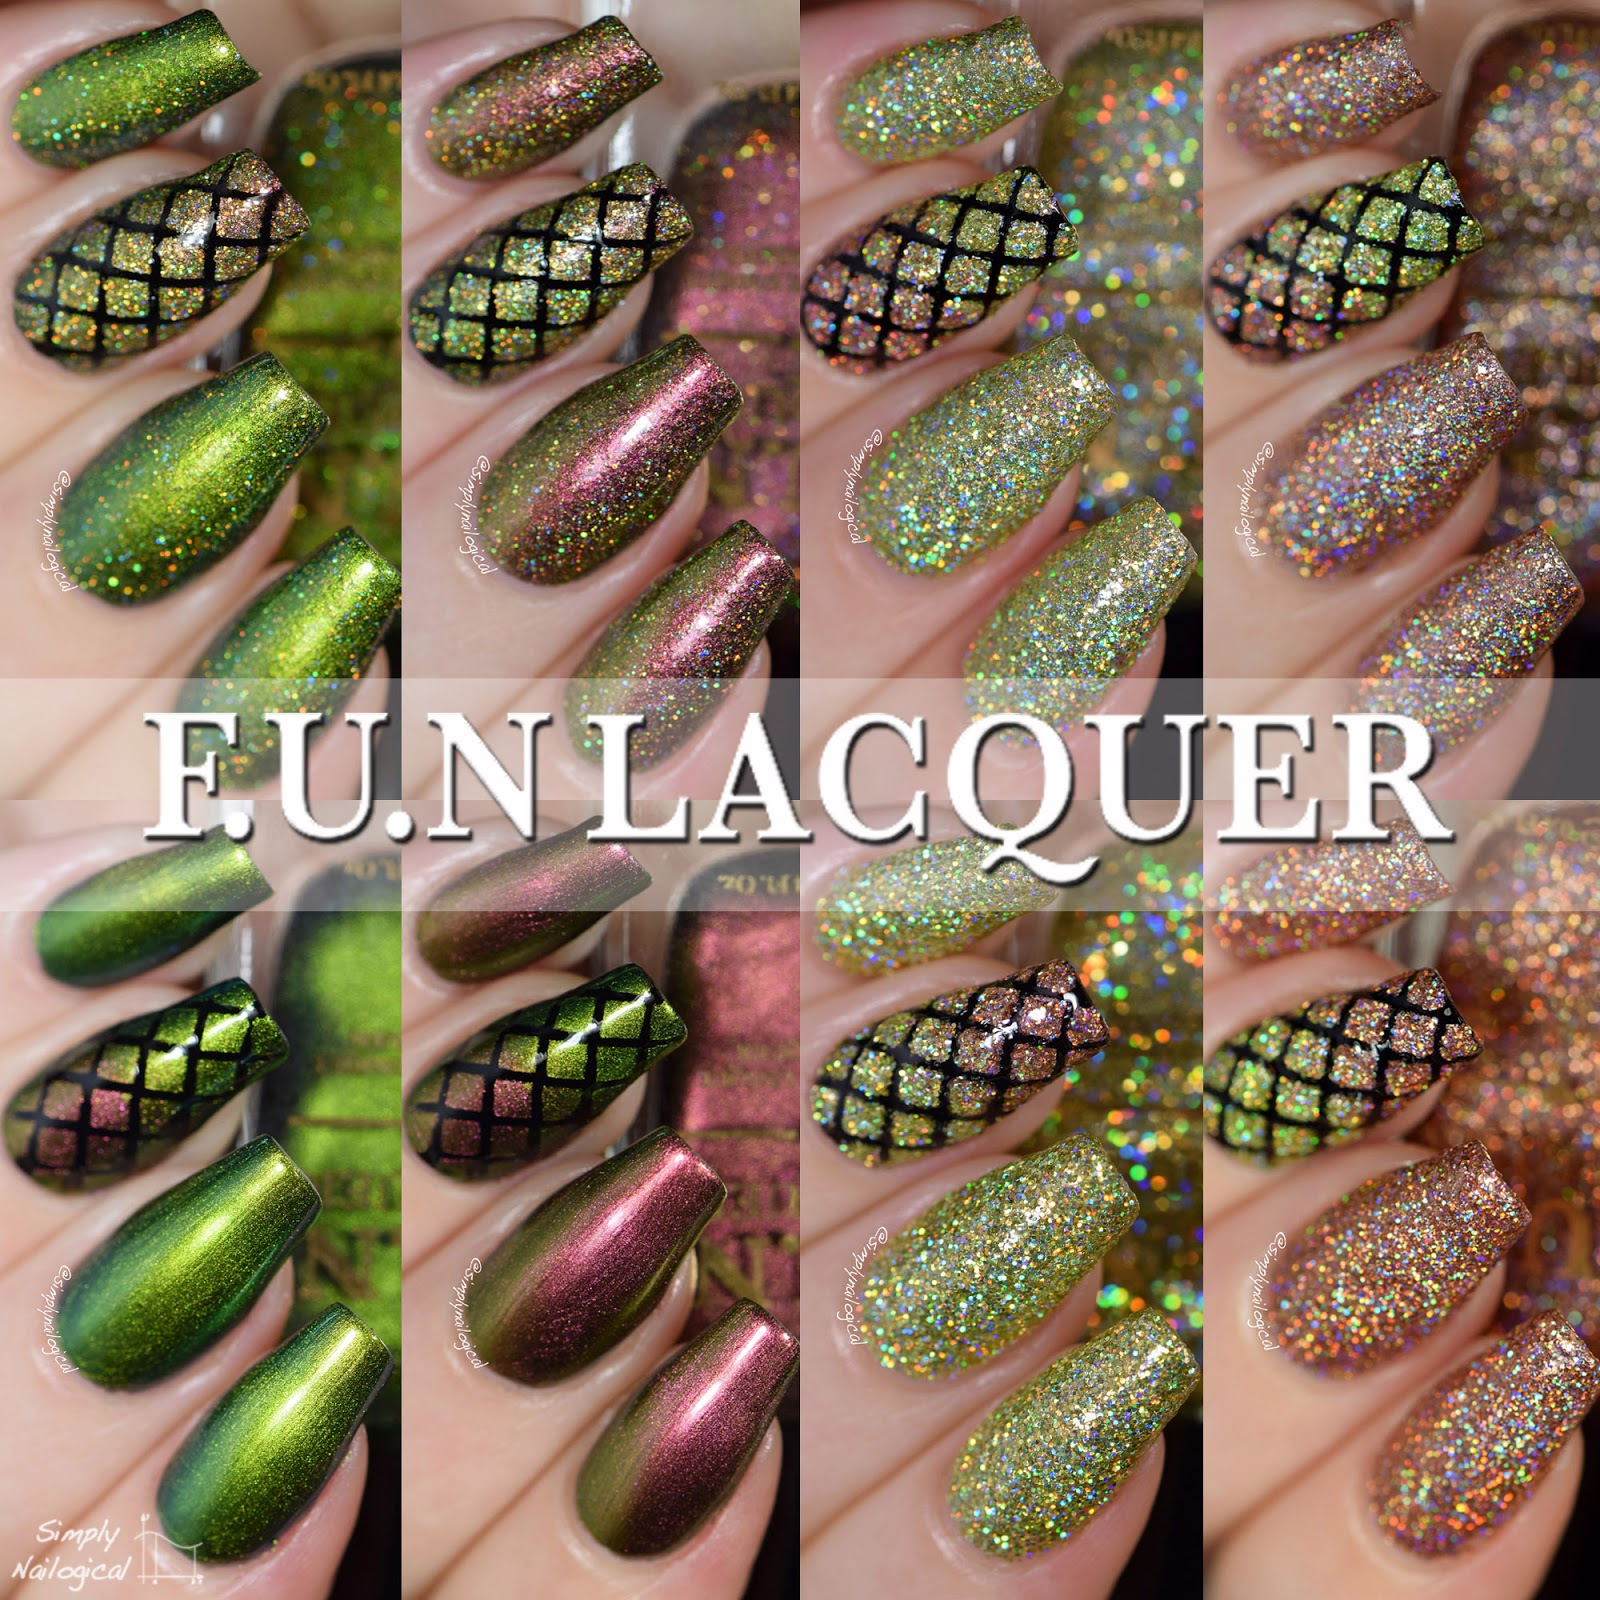 FUN Lacquer Christmas 2014 collection swatches